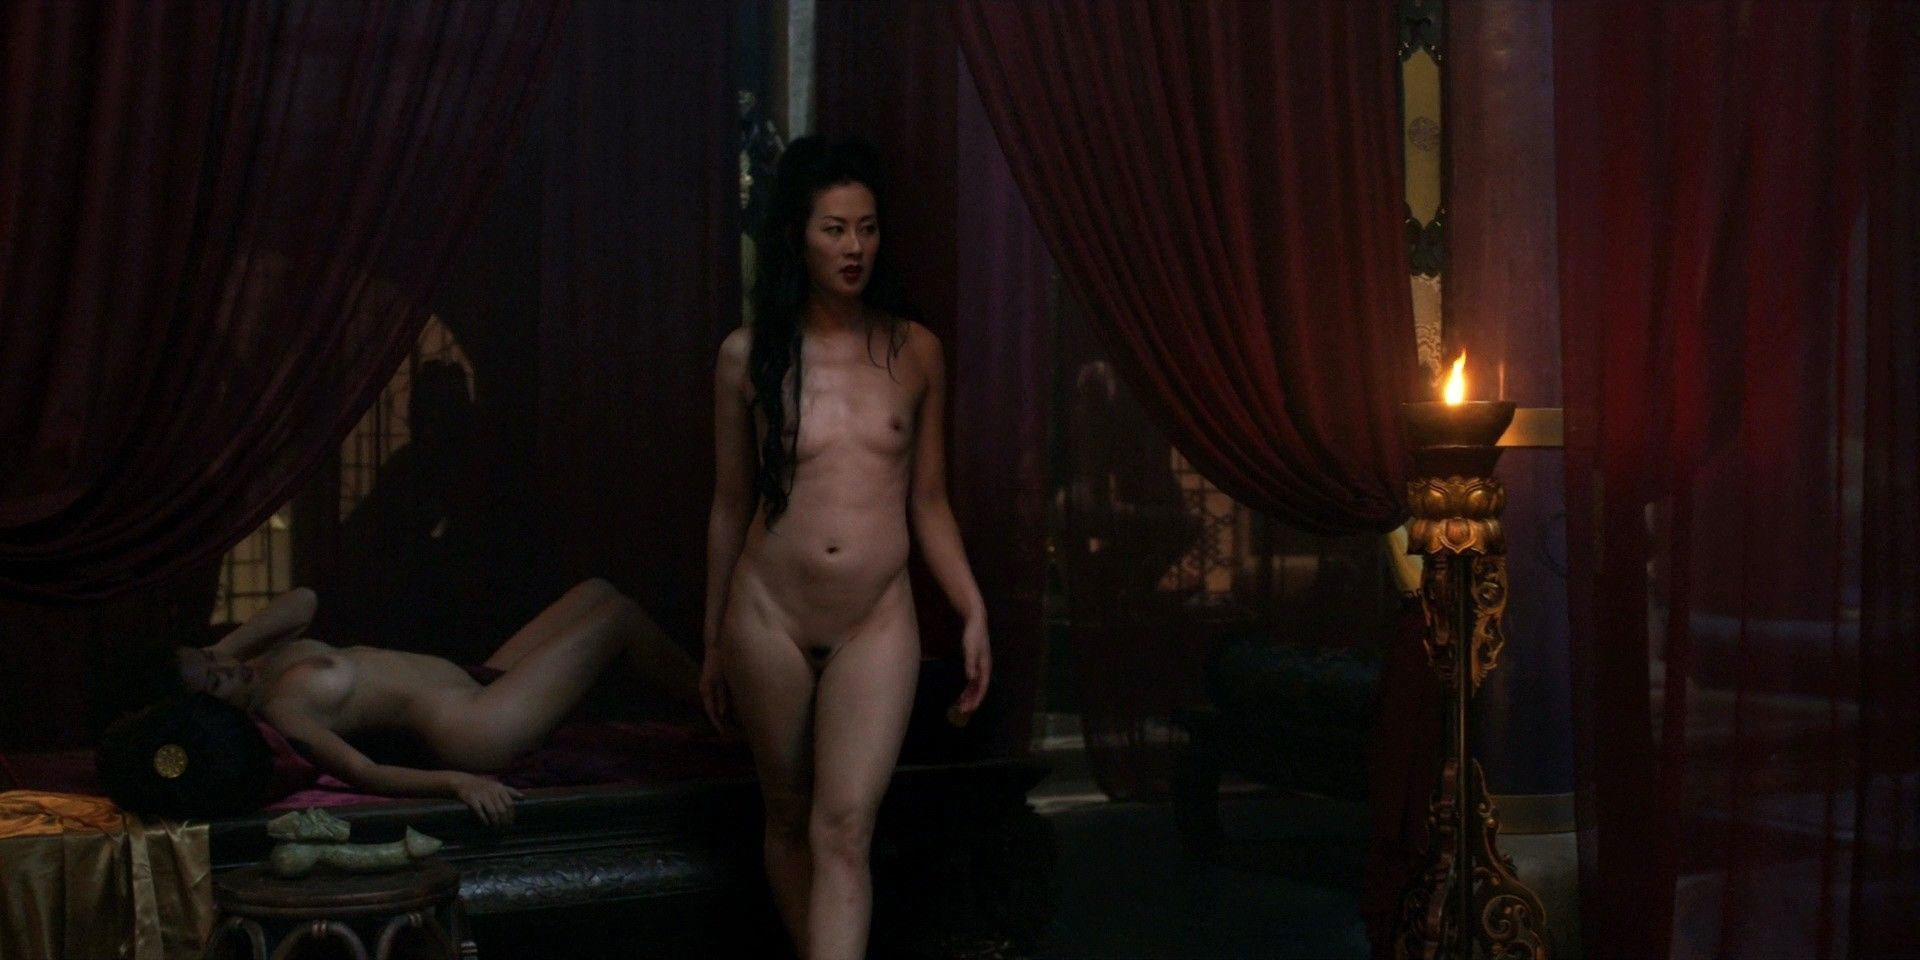 Joan Chen Hot See Through Denise Kellogg Nude Topless Katy Behean And Others Hot